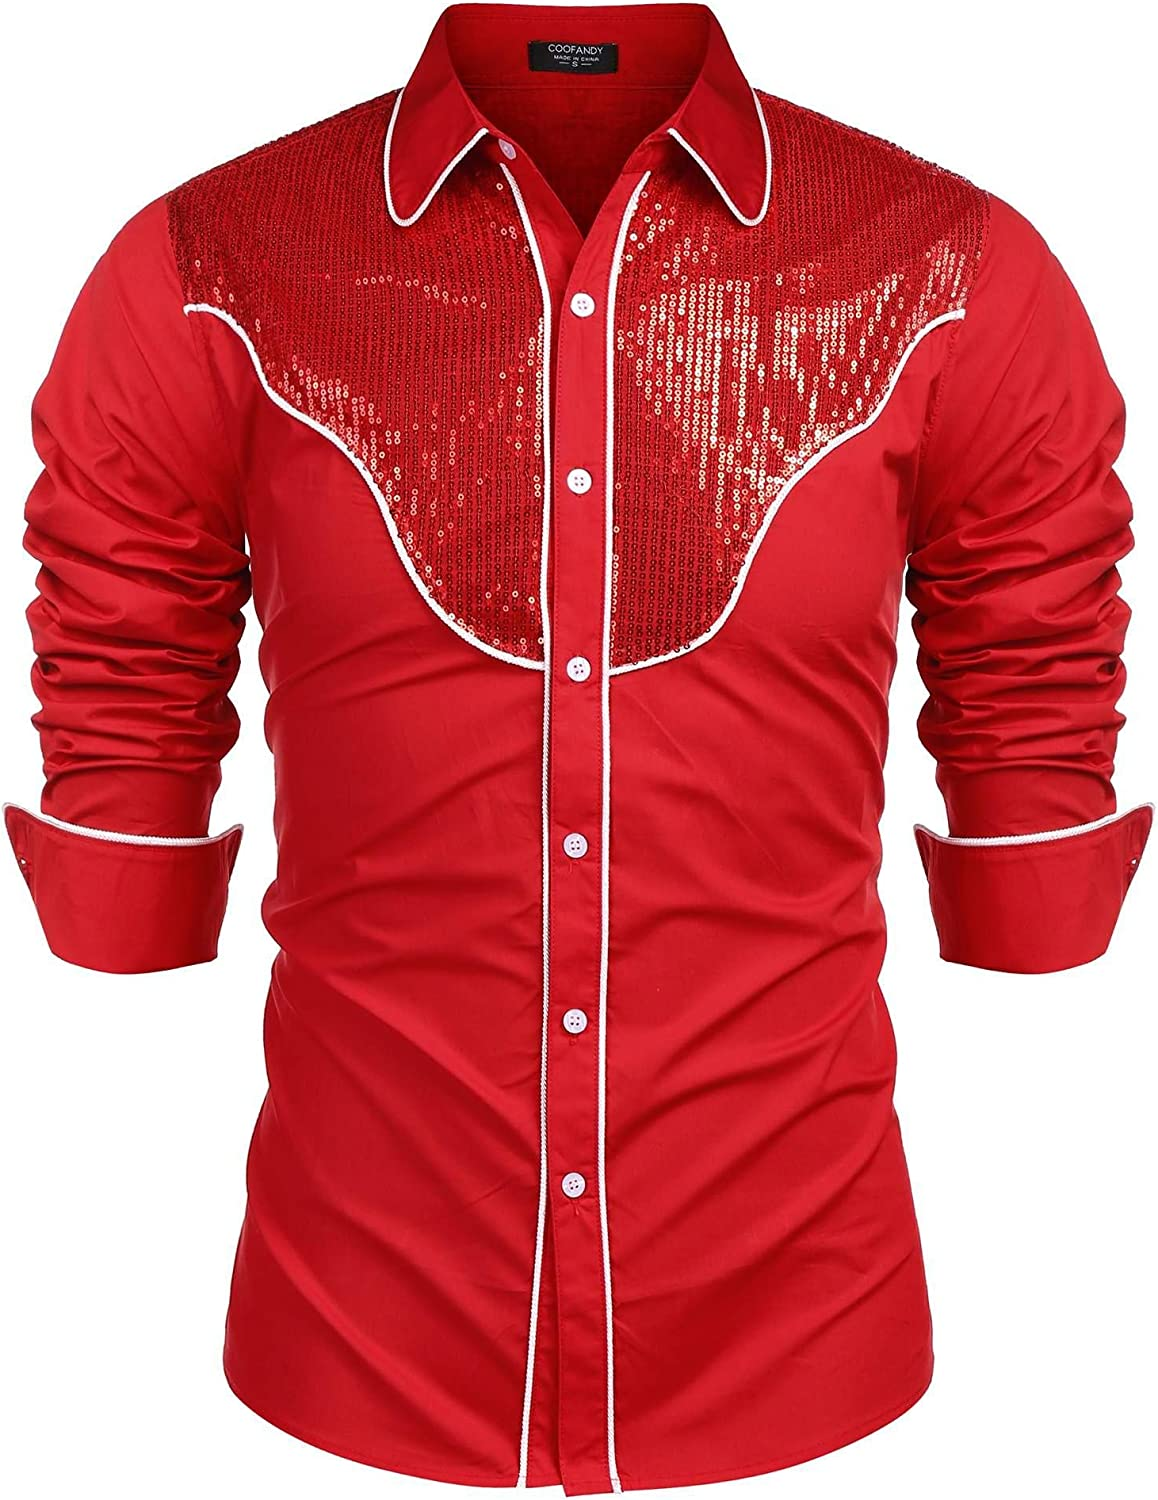 COOFANDY Men's Sequin Embroidered Western Shirts Long Sleeve Slim Fit Casual Button Down Party Shirt